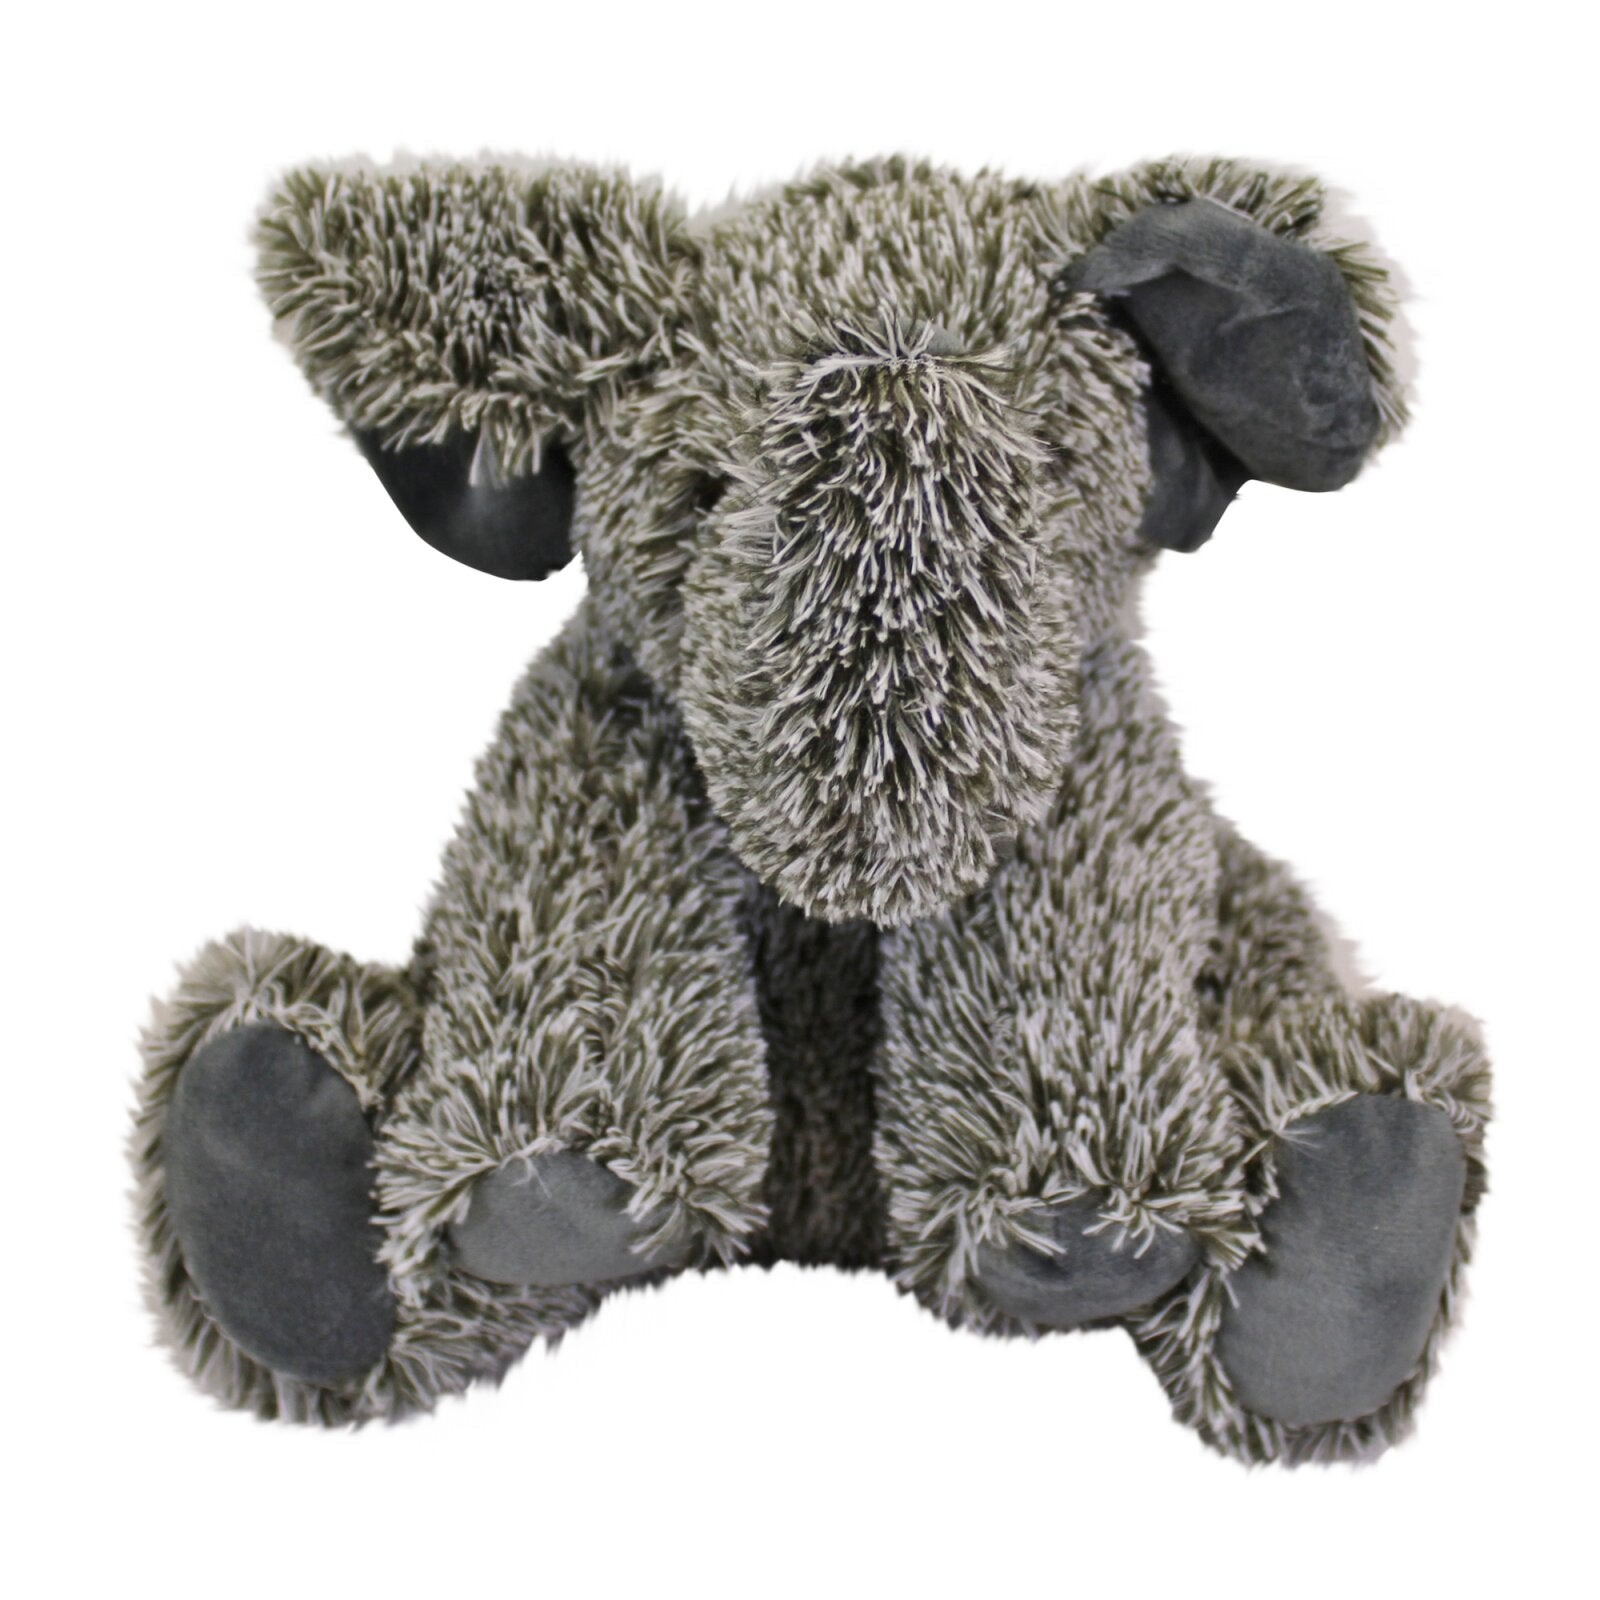 Fluffy Elephant Door Stop, Building Materials by Gifts24-7